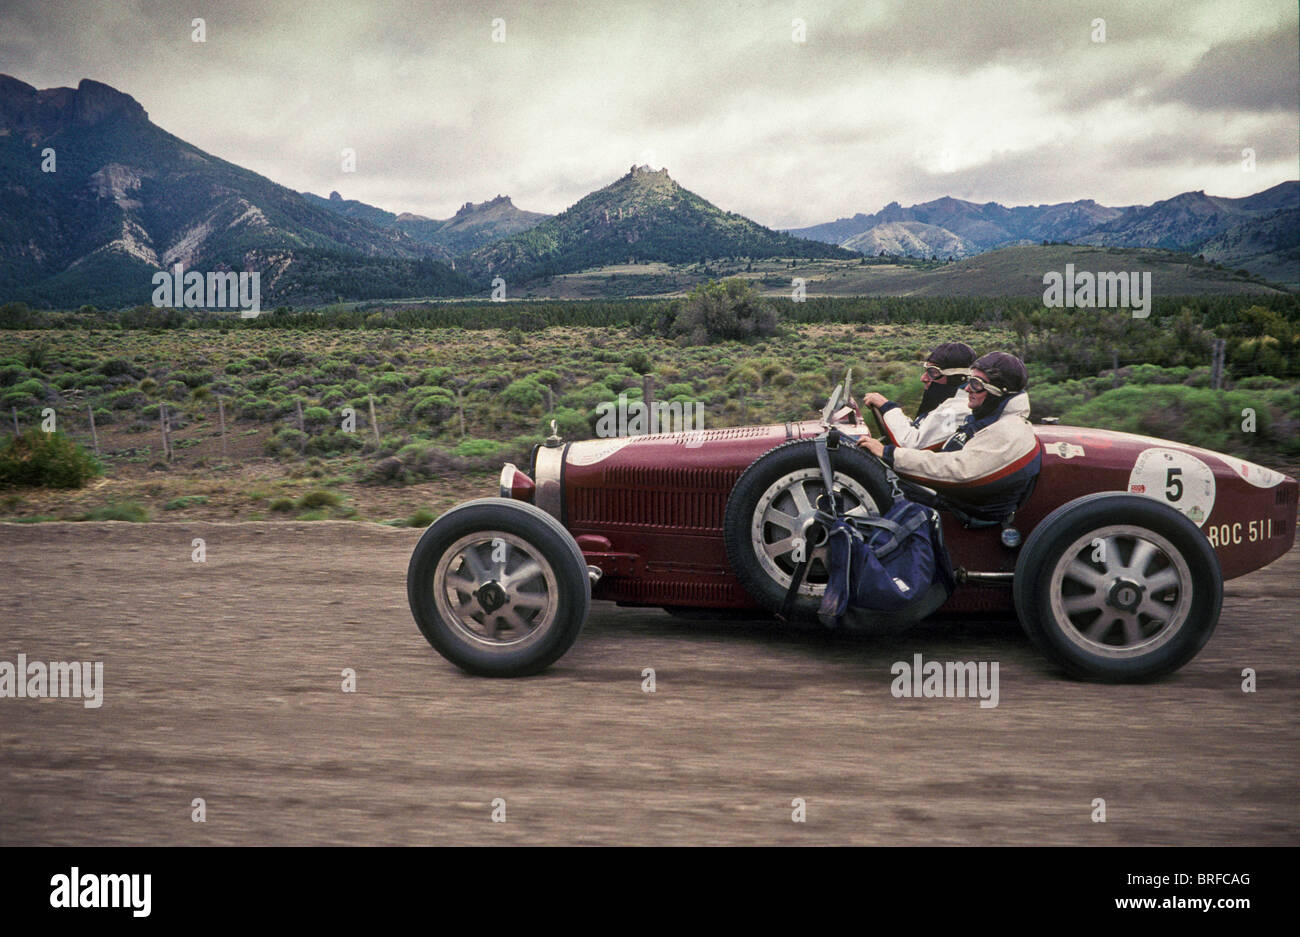 a classic Bugatti racing car takes part in the famous Mille Miglia (1000 mile) classic race in Patagonia, Argentina. - Stock Image